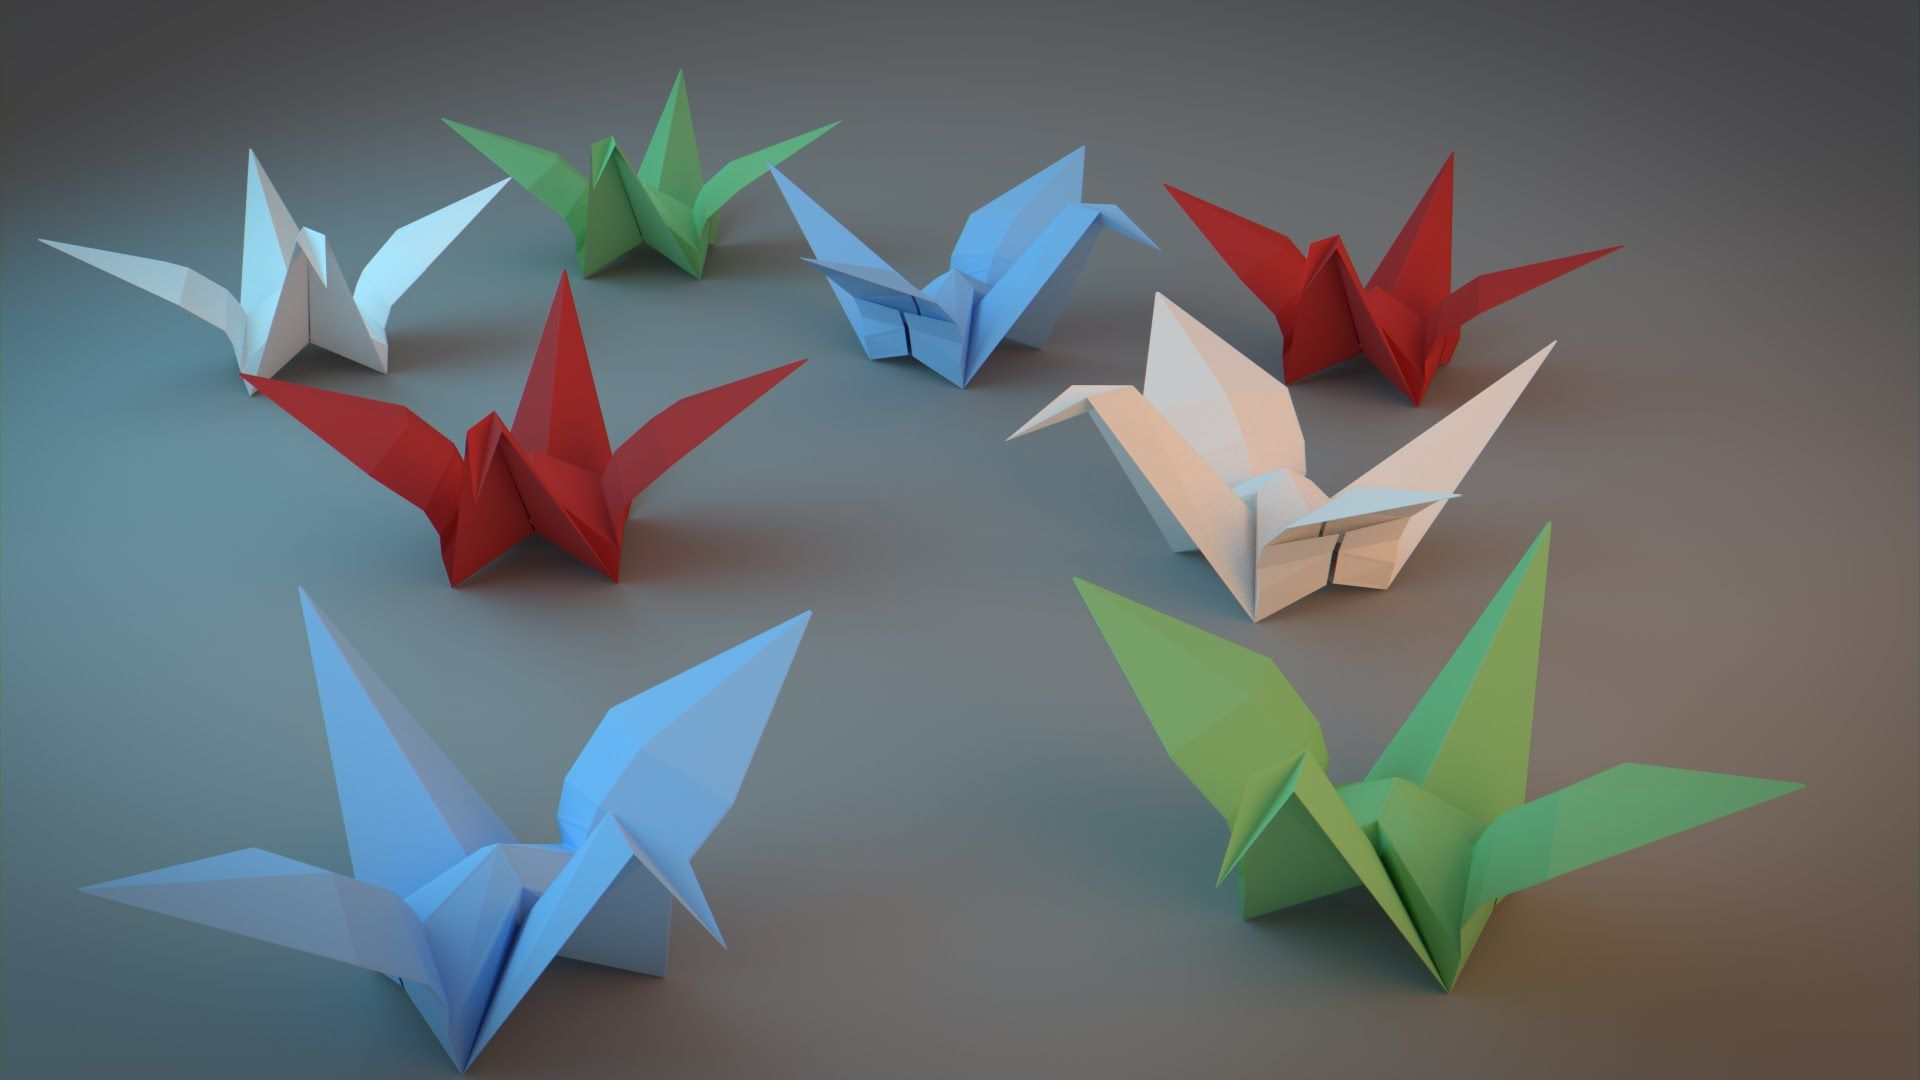 About | Origami Video Lesson | 1080x1920